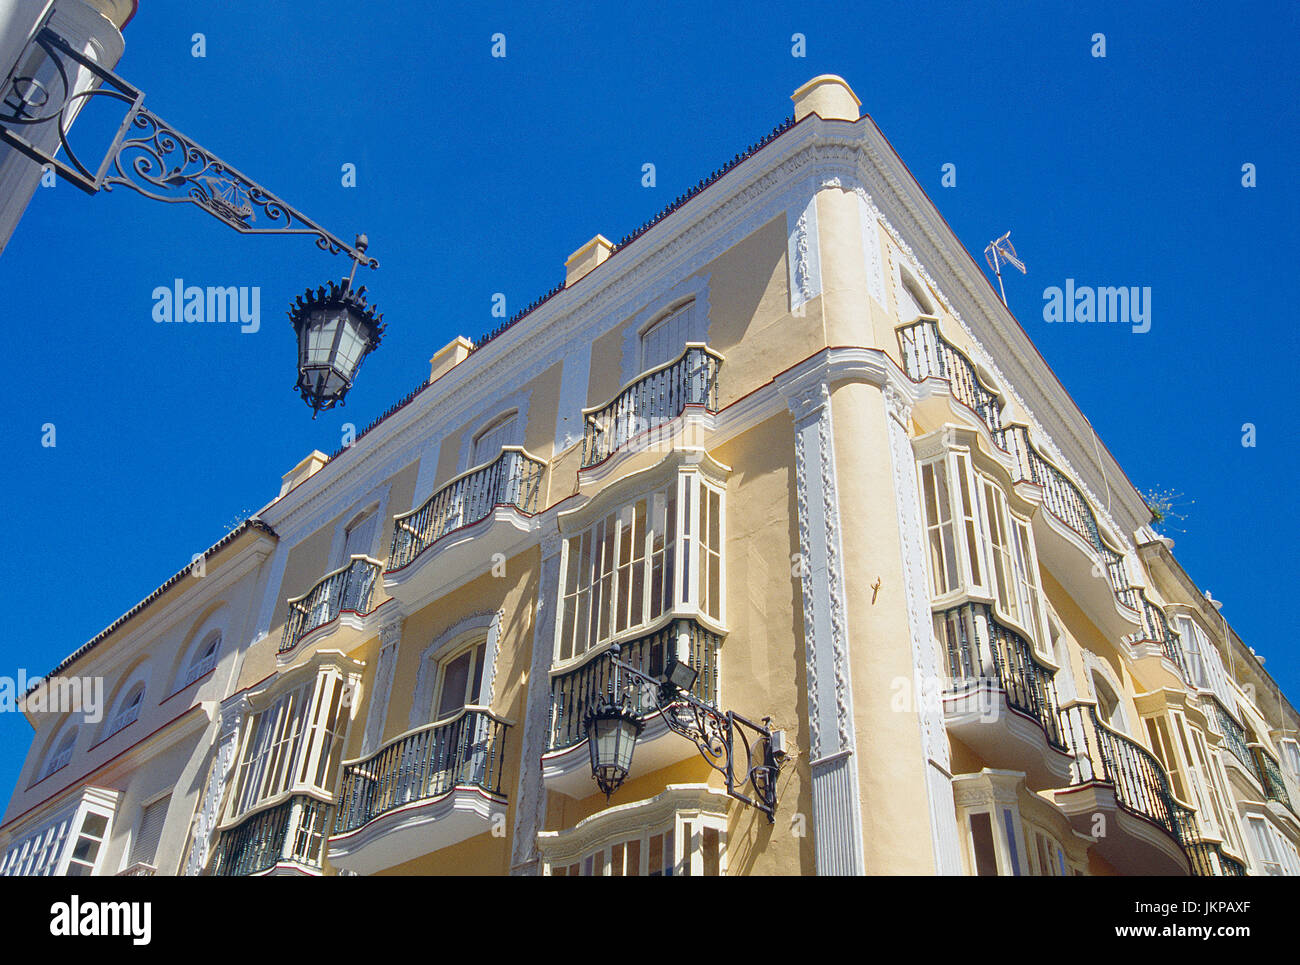 Facade of house, view from below. Ancha street, Cadiz, Spain. - Stock Image